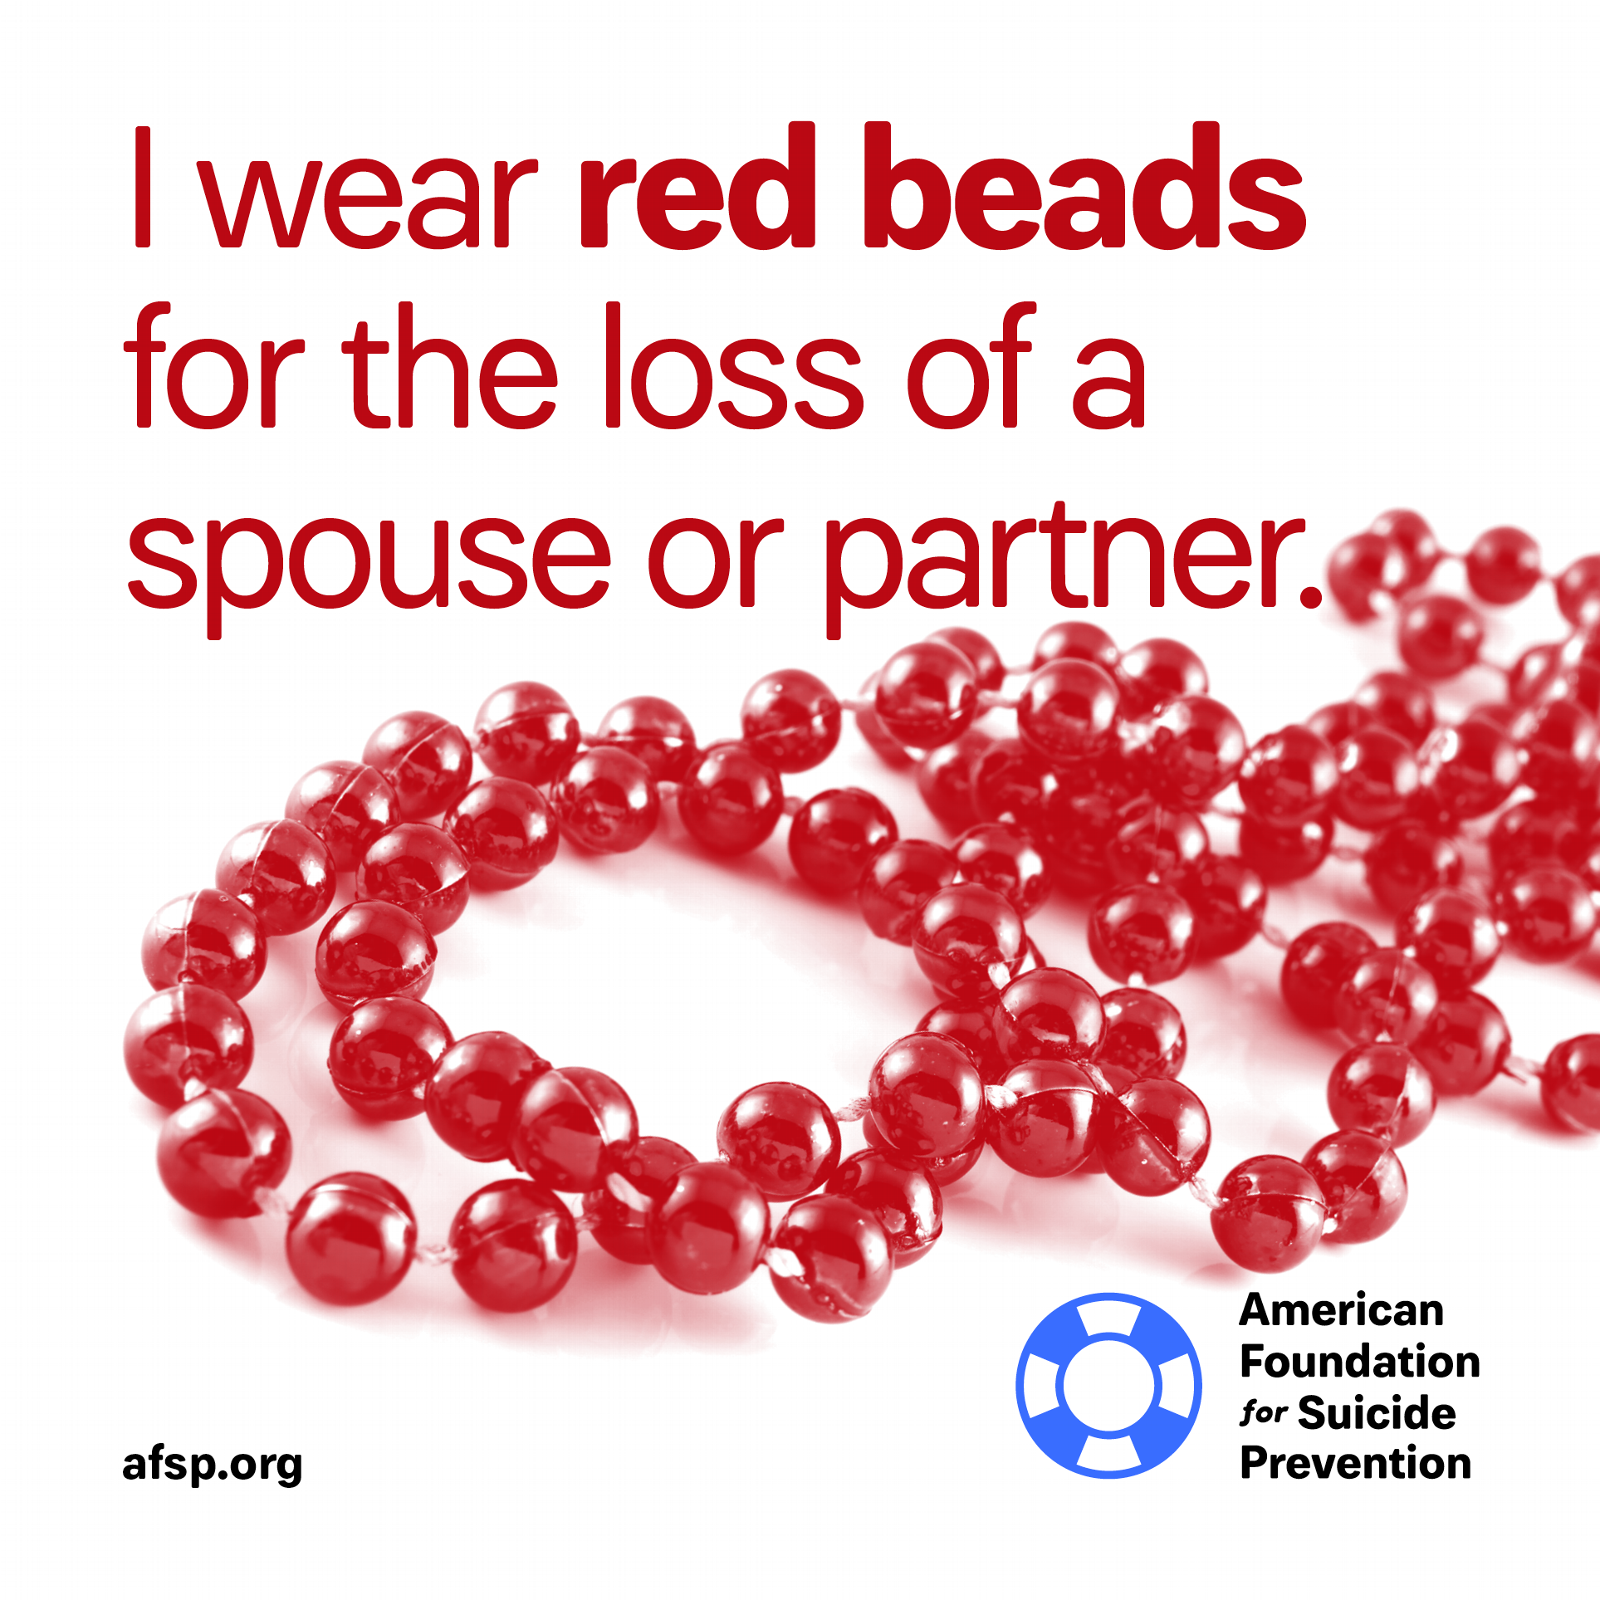 Red beads for the loss of a spouse or partner